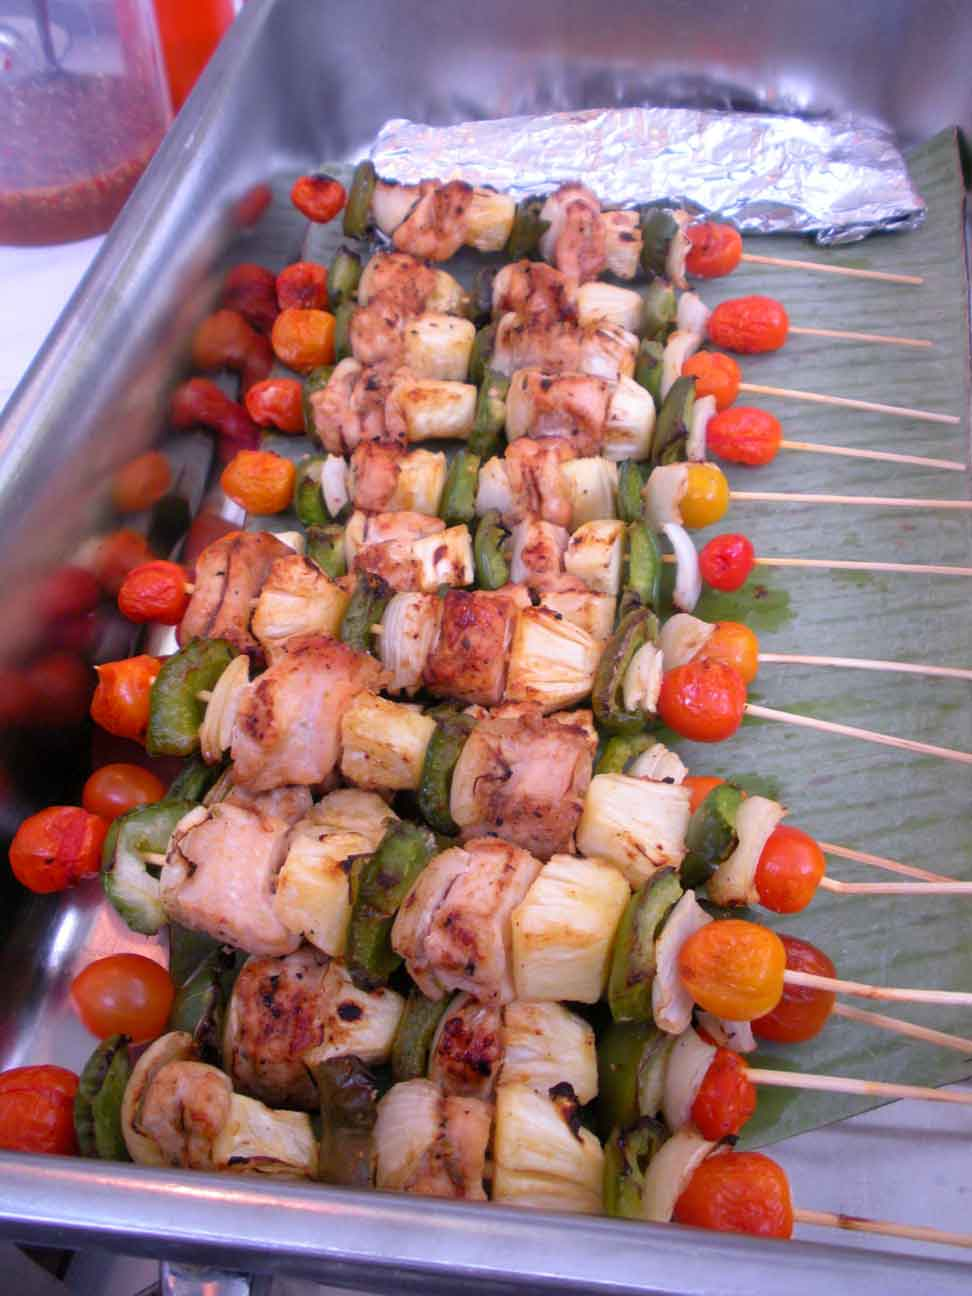 Thai Fair - Chicken skewers